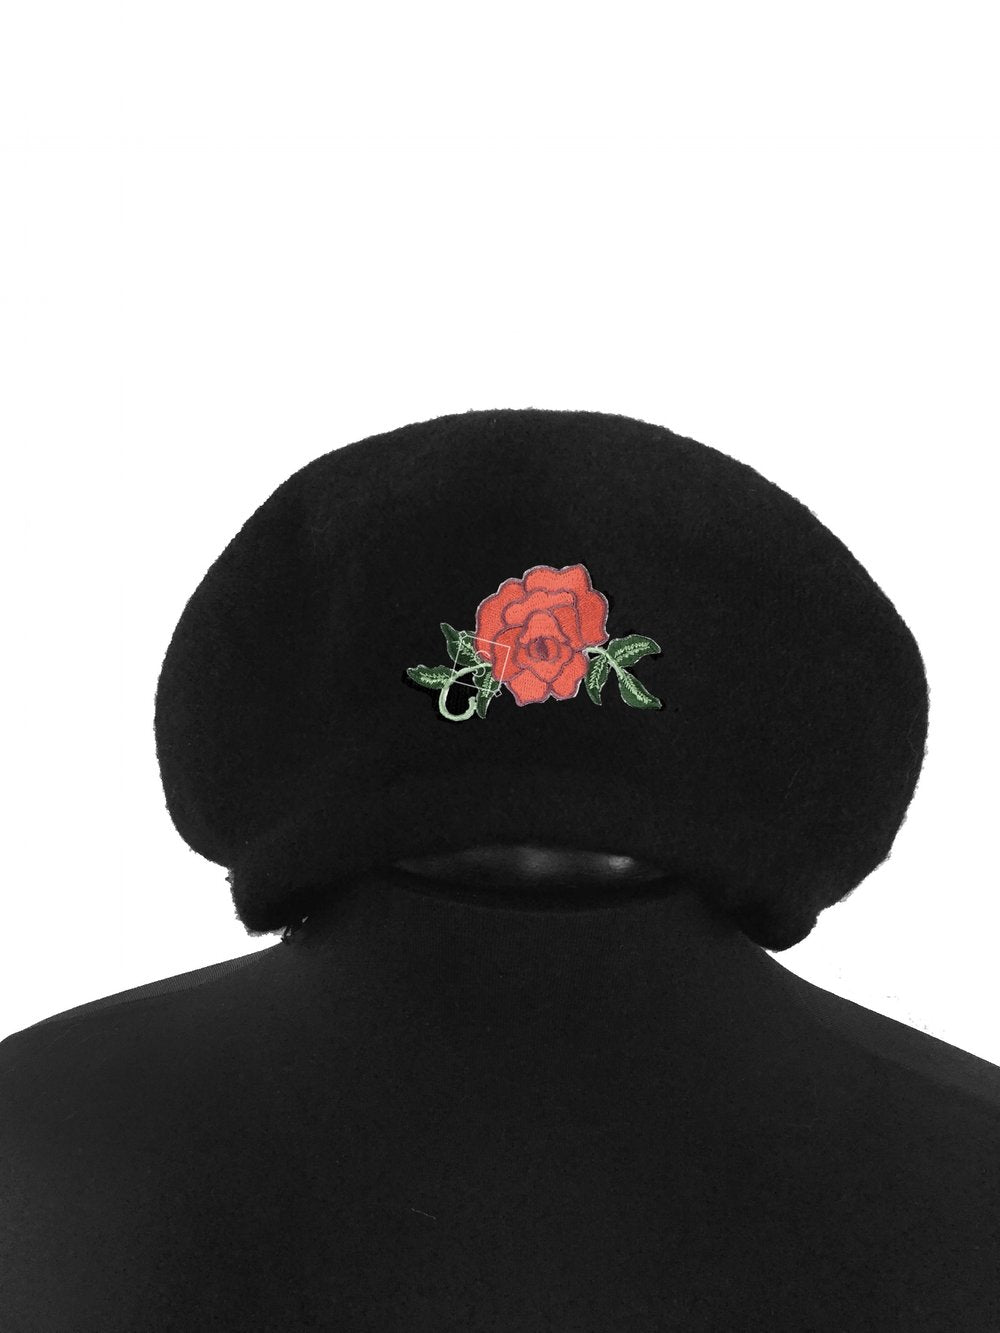 Rose Beret - Stinnys